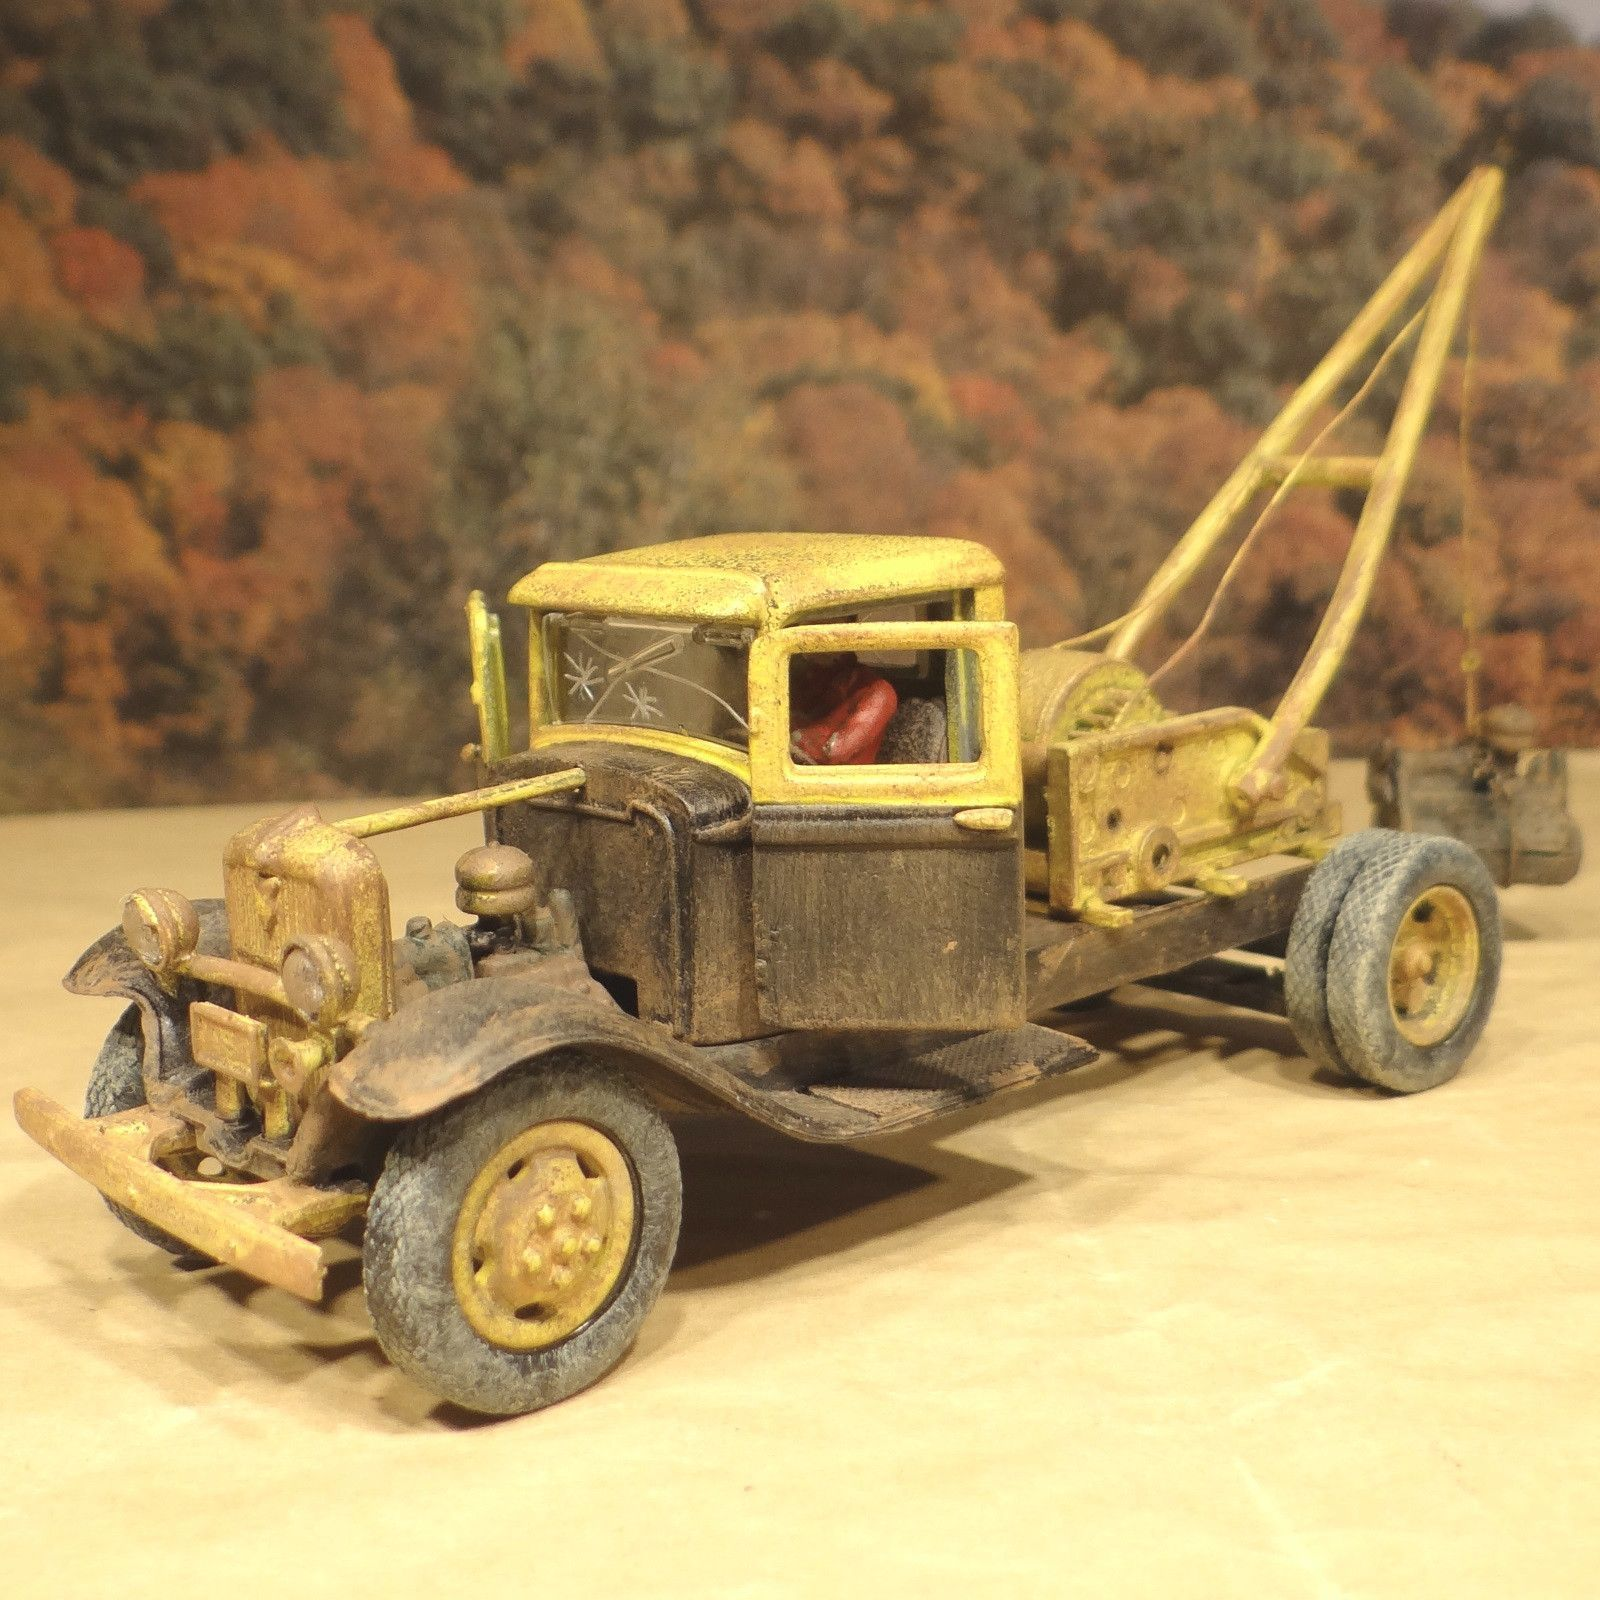 1934 Ford Junk Yard Tow Truck - O Scale On30 - 1/43 Diecast ...